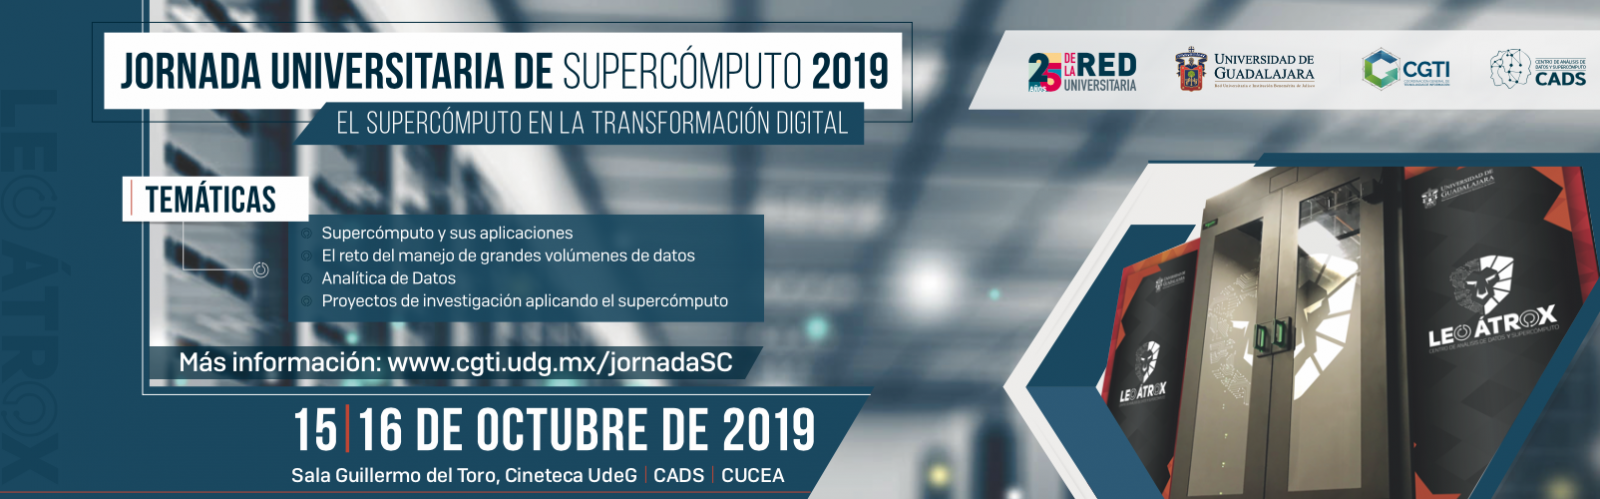 Jornada de supercomputo